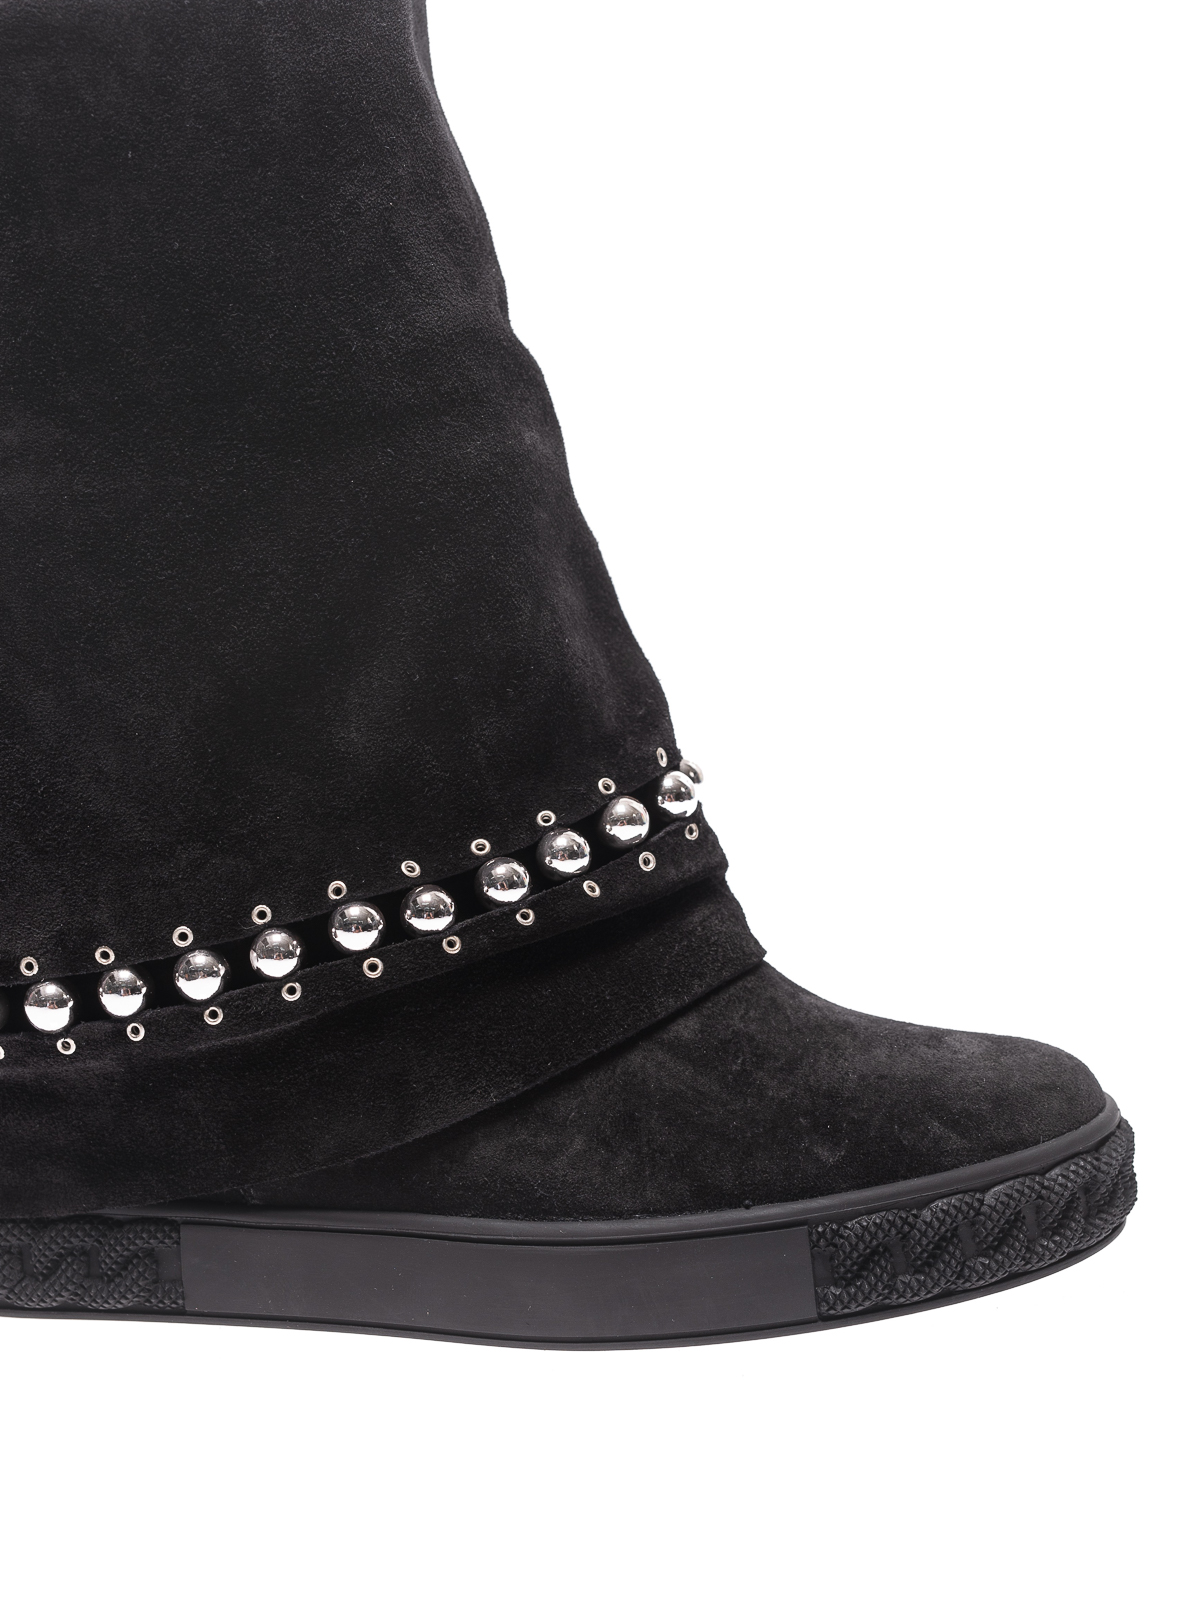 iKRIX Casadei  ankle boots - Black suede embellished sneaker sole booties 3dffdd444b3